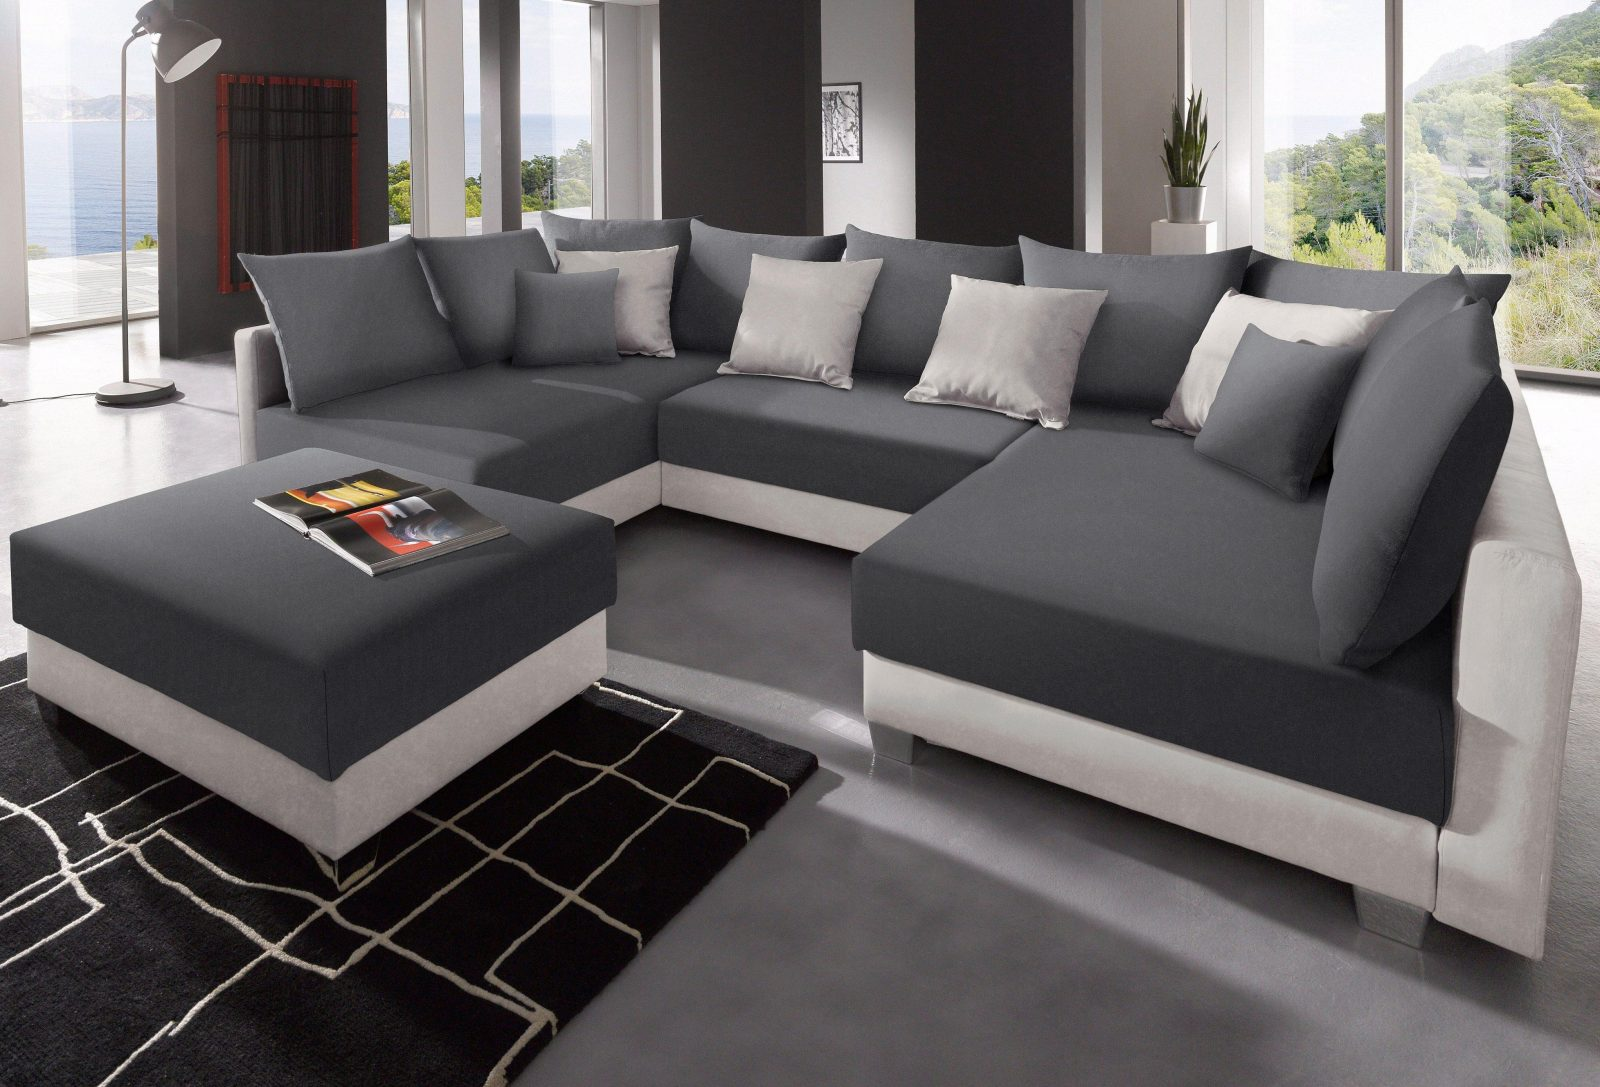 U Form Couch L Sofa Xxl 7 Wohnlandschaft Matera Xxl U Form Design Couch